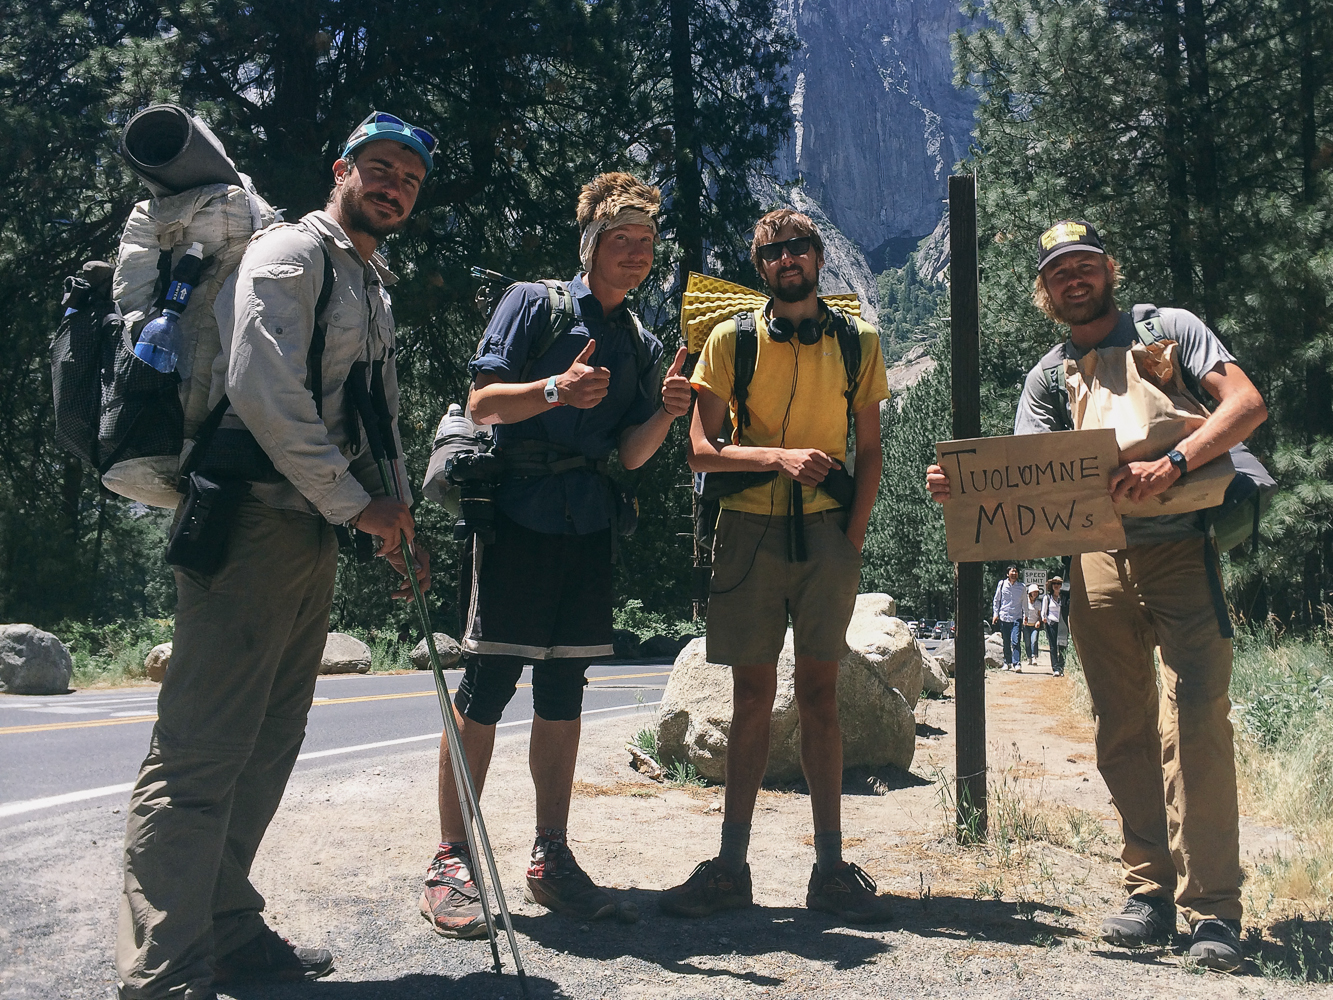 Half'n'Half, myself, Quinoa and Choop hitching back up to Tuolomne Meadows from Yosemite Valley.